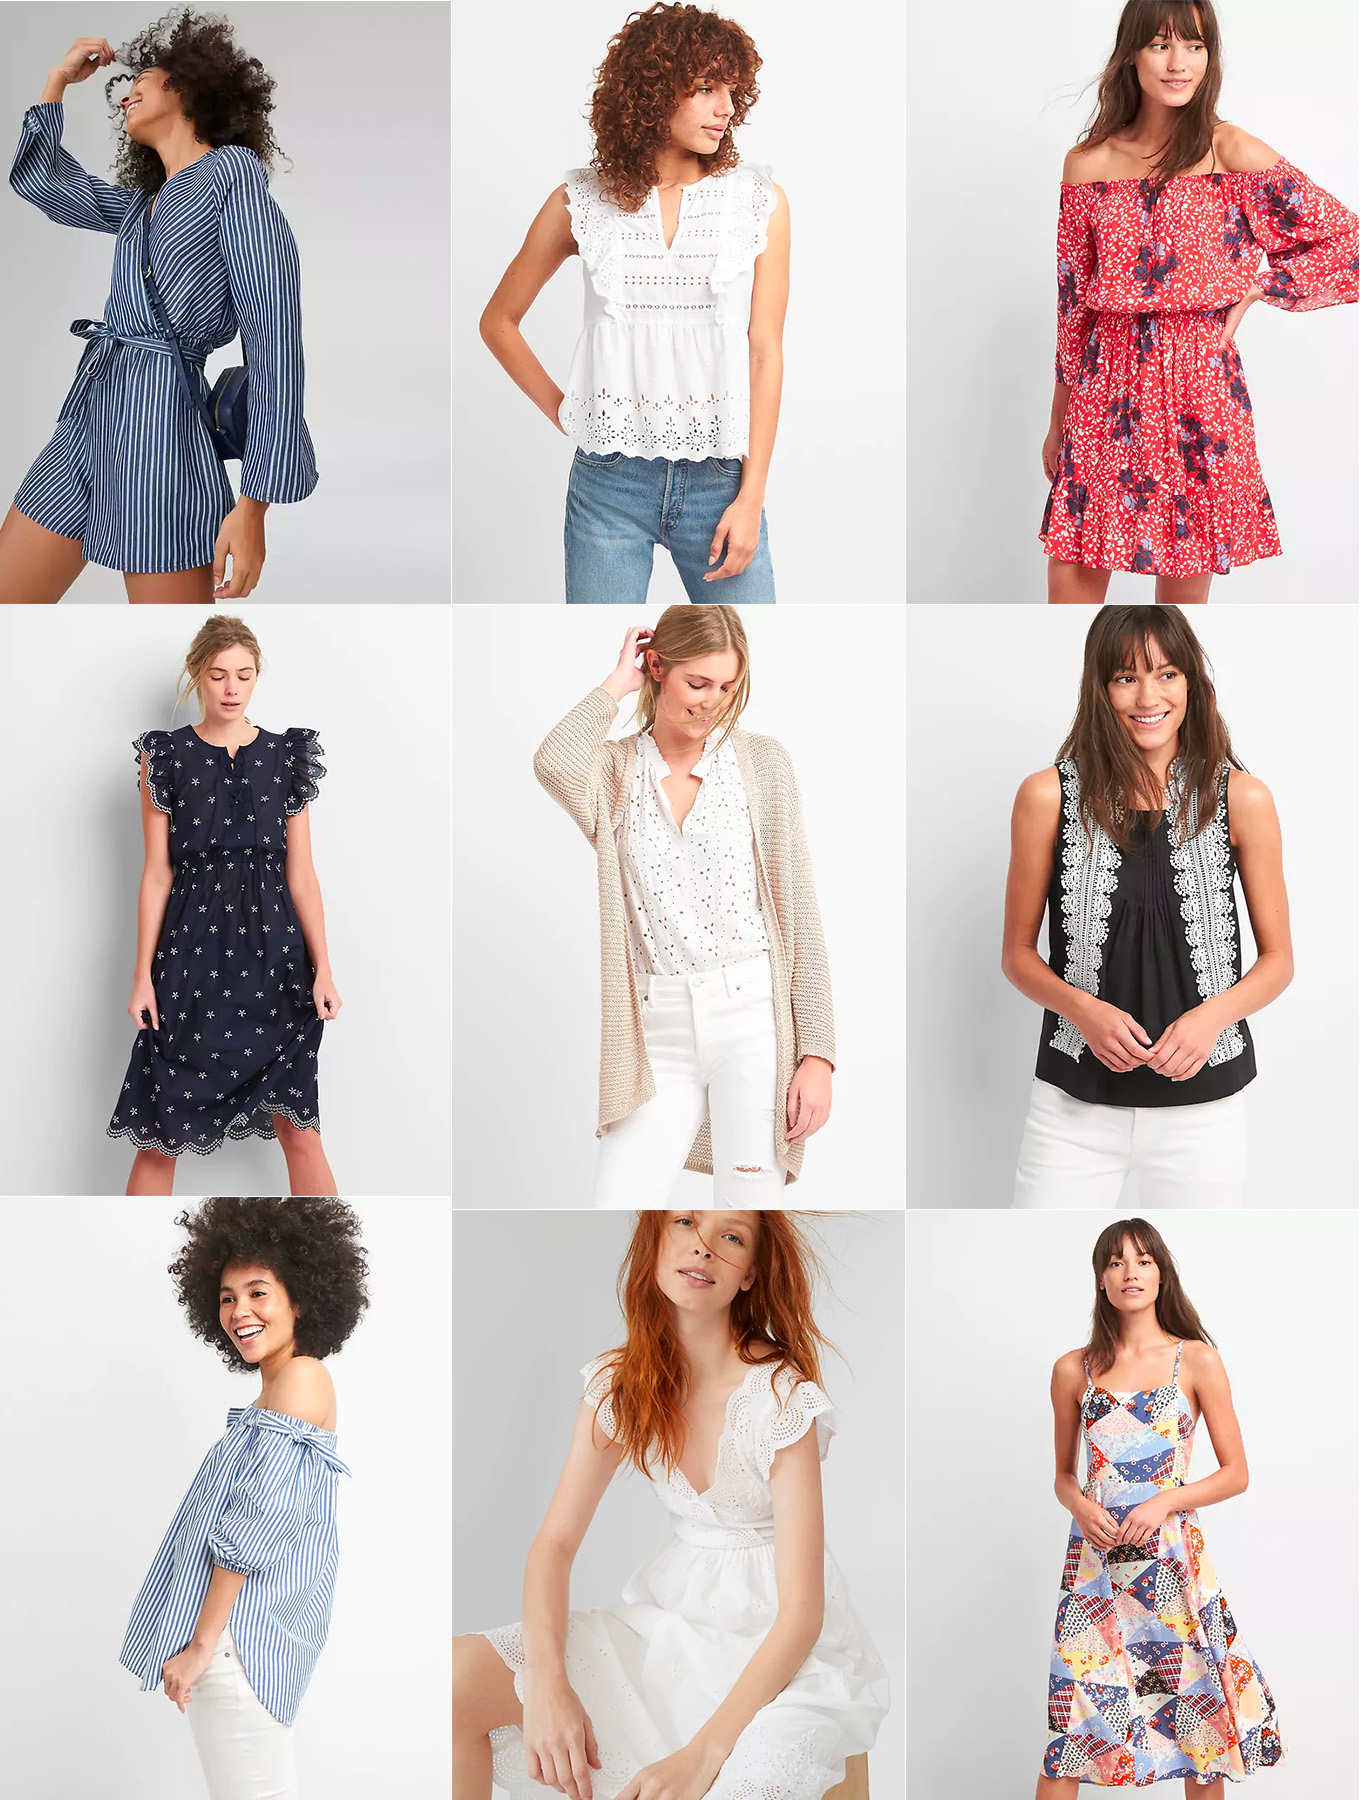 Ridgely Brode shops the Fill Your Basket event at Gap and shares some of her favorites on her blog, Ridgely's Radar.